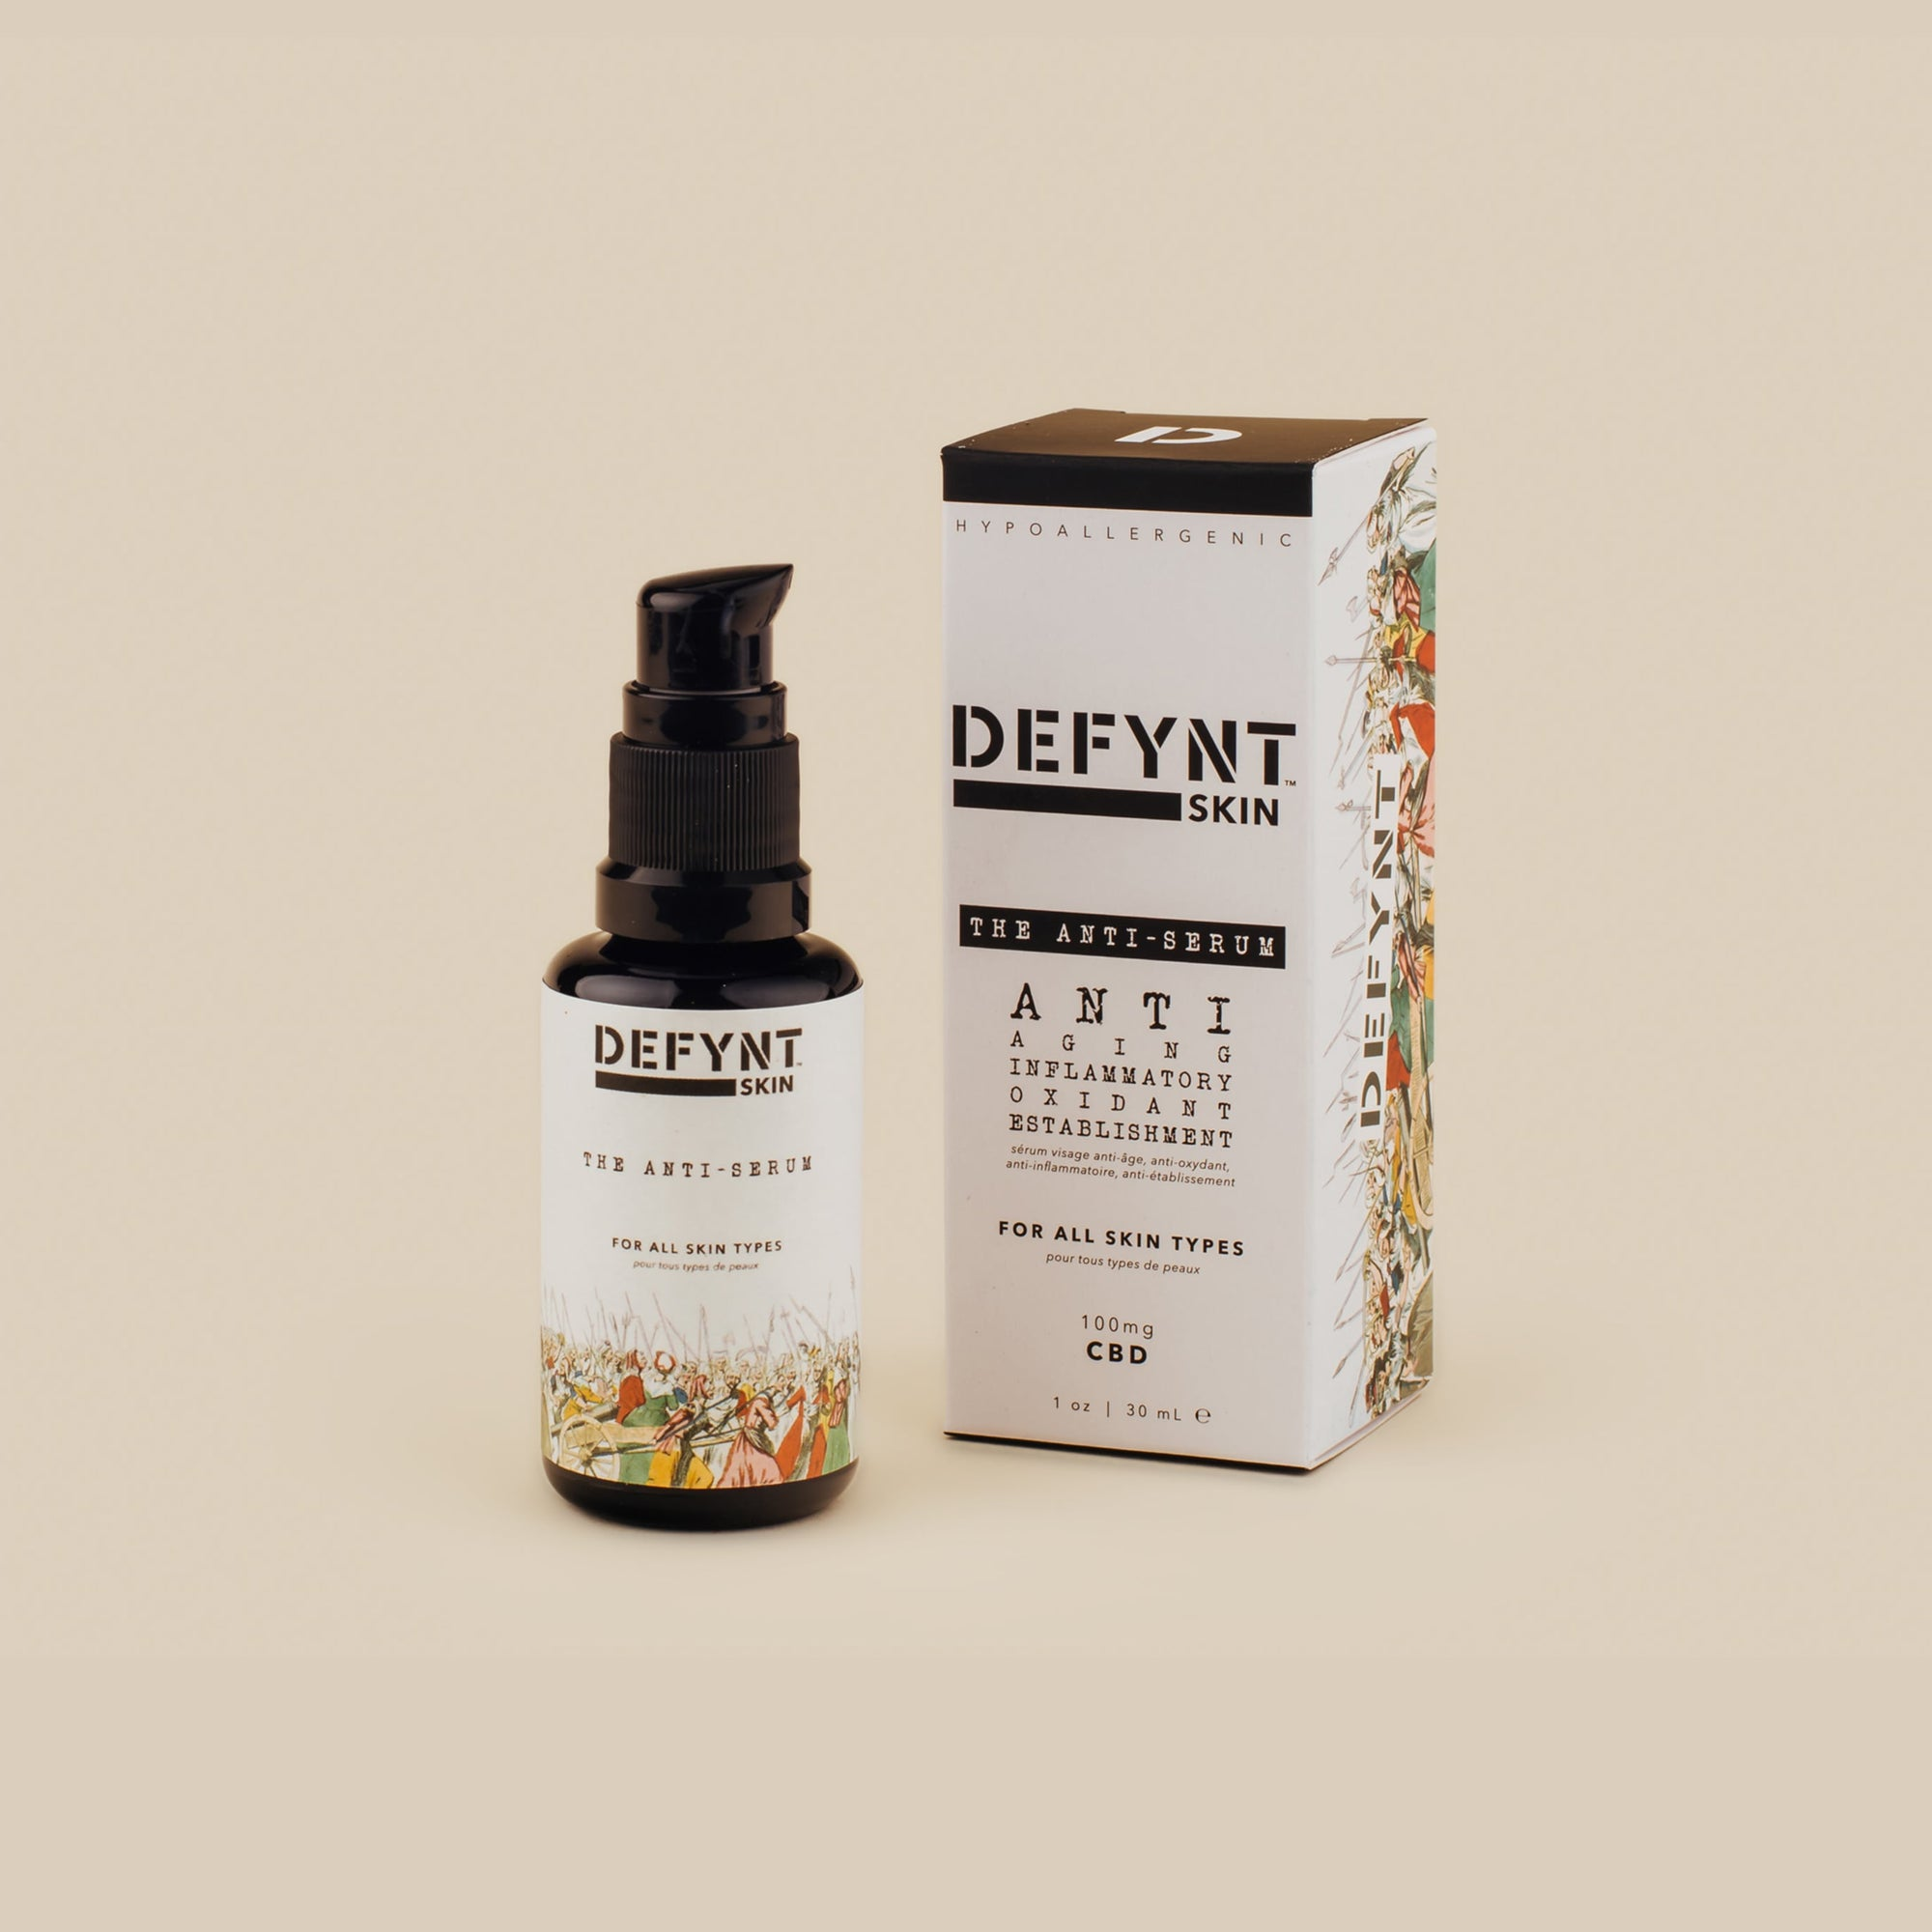 Defynt Anti-Serum